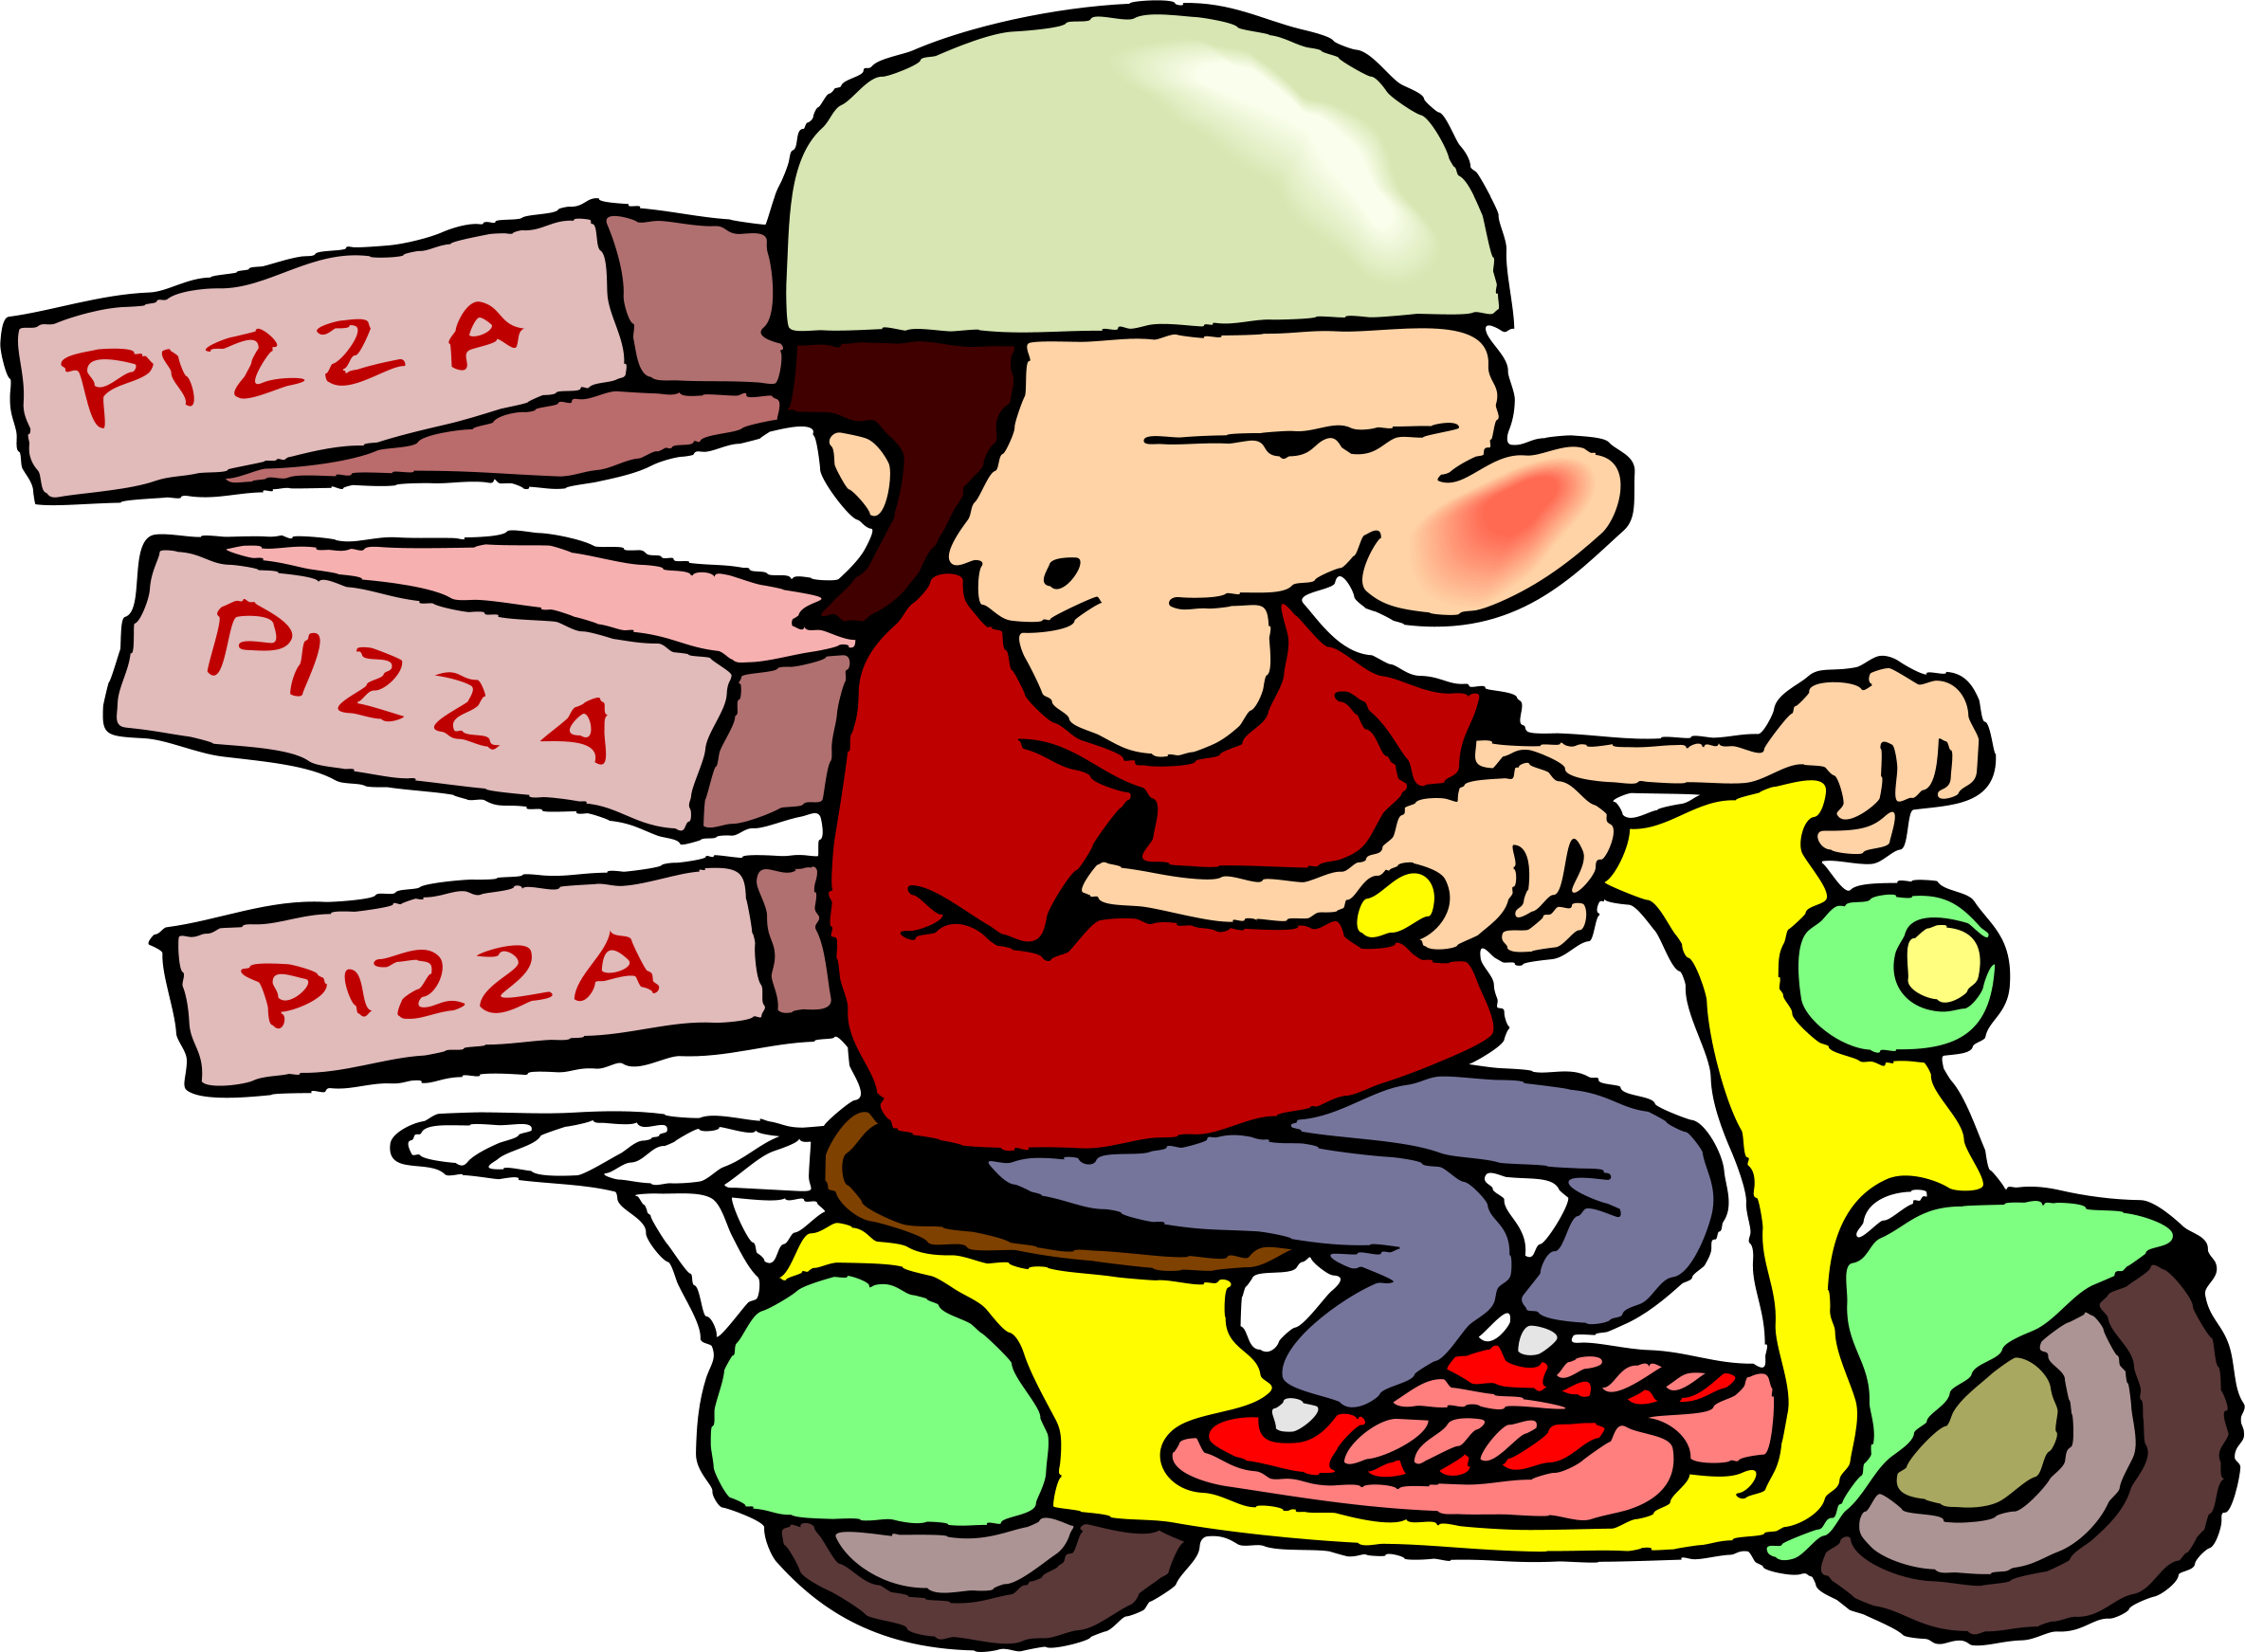 Man group free cliparthut. People clipart pizza